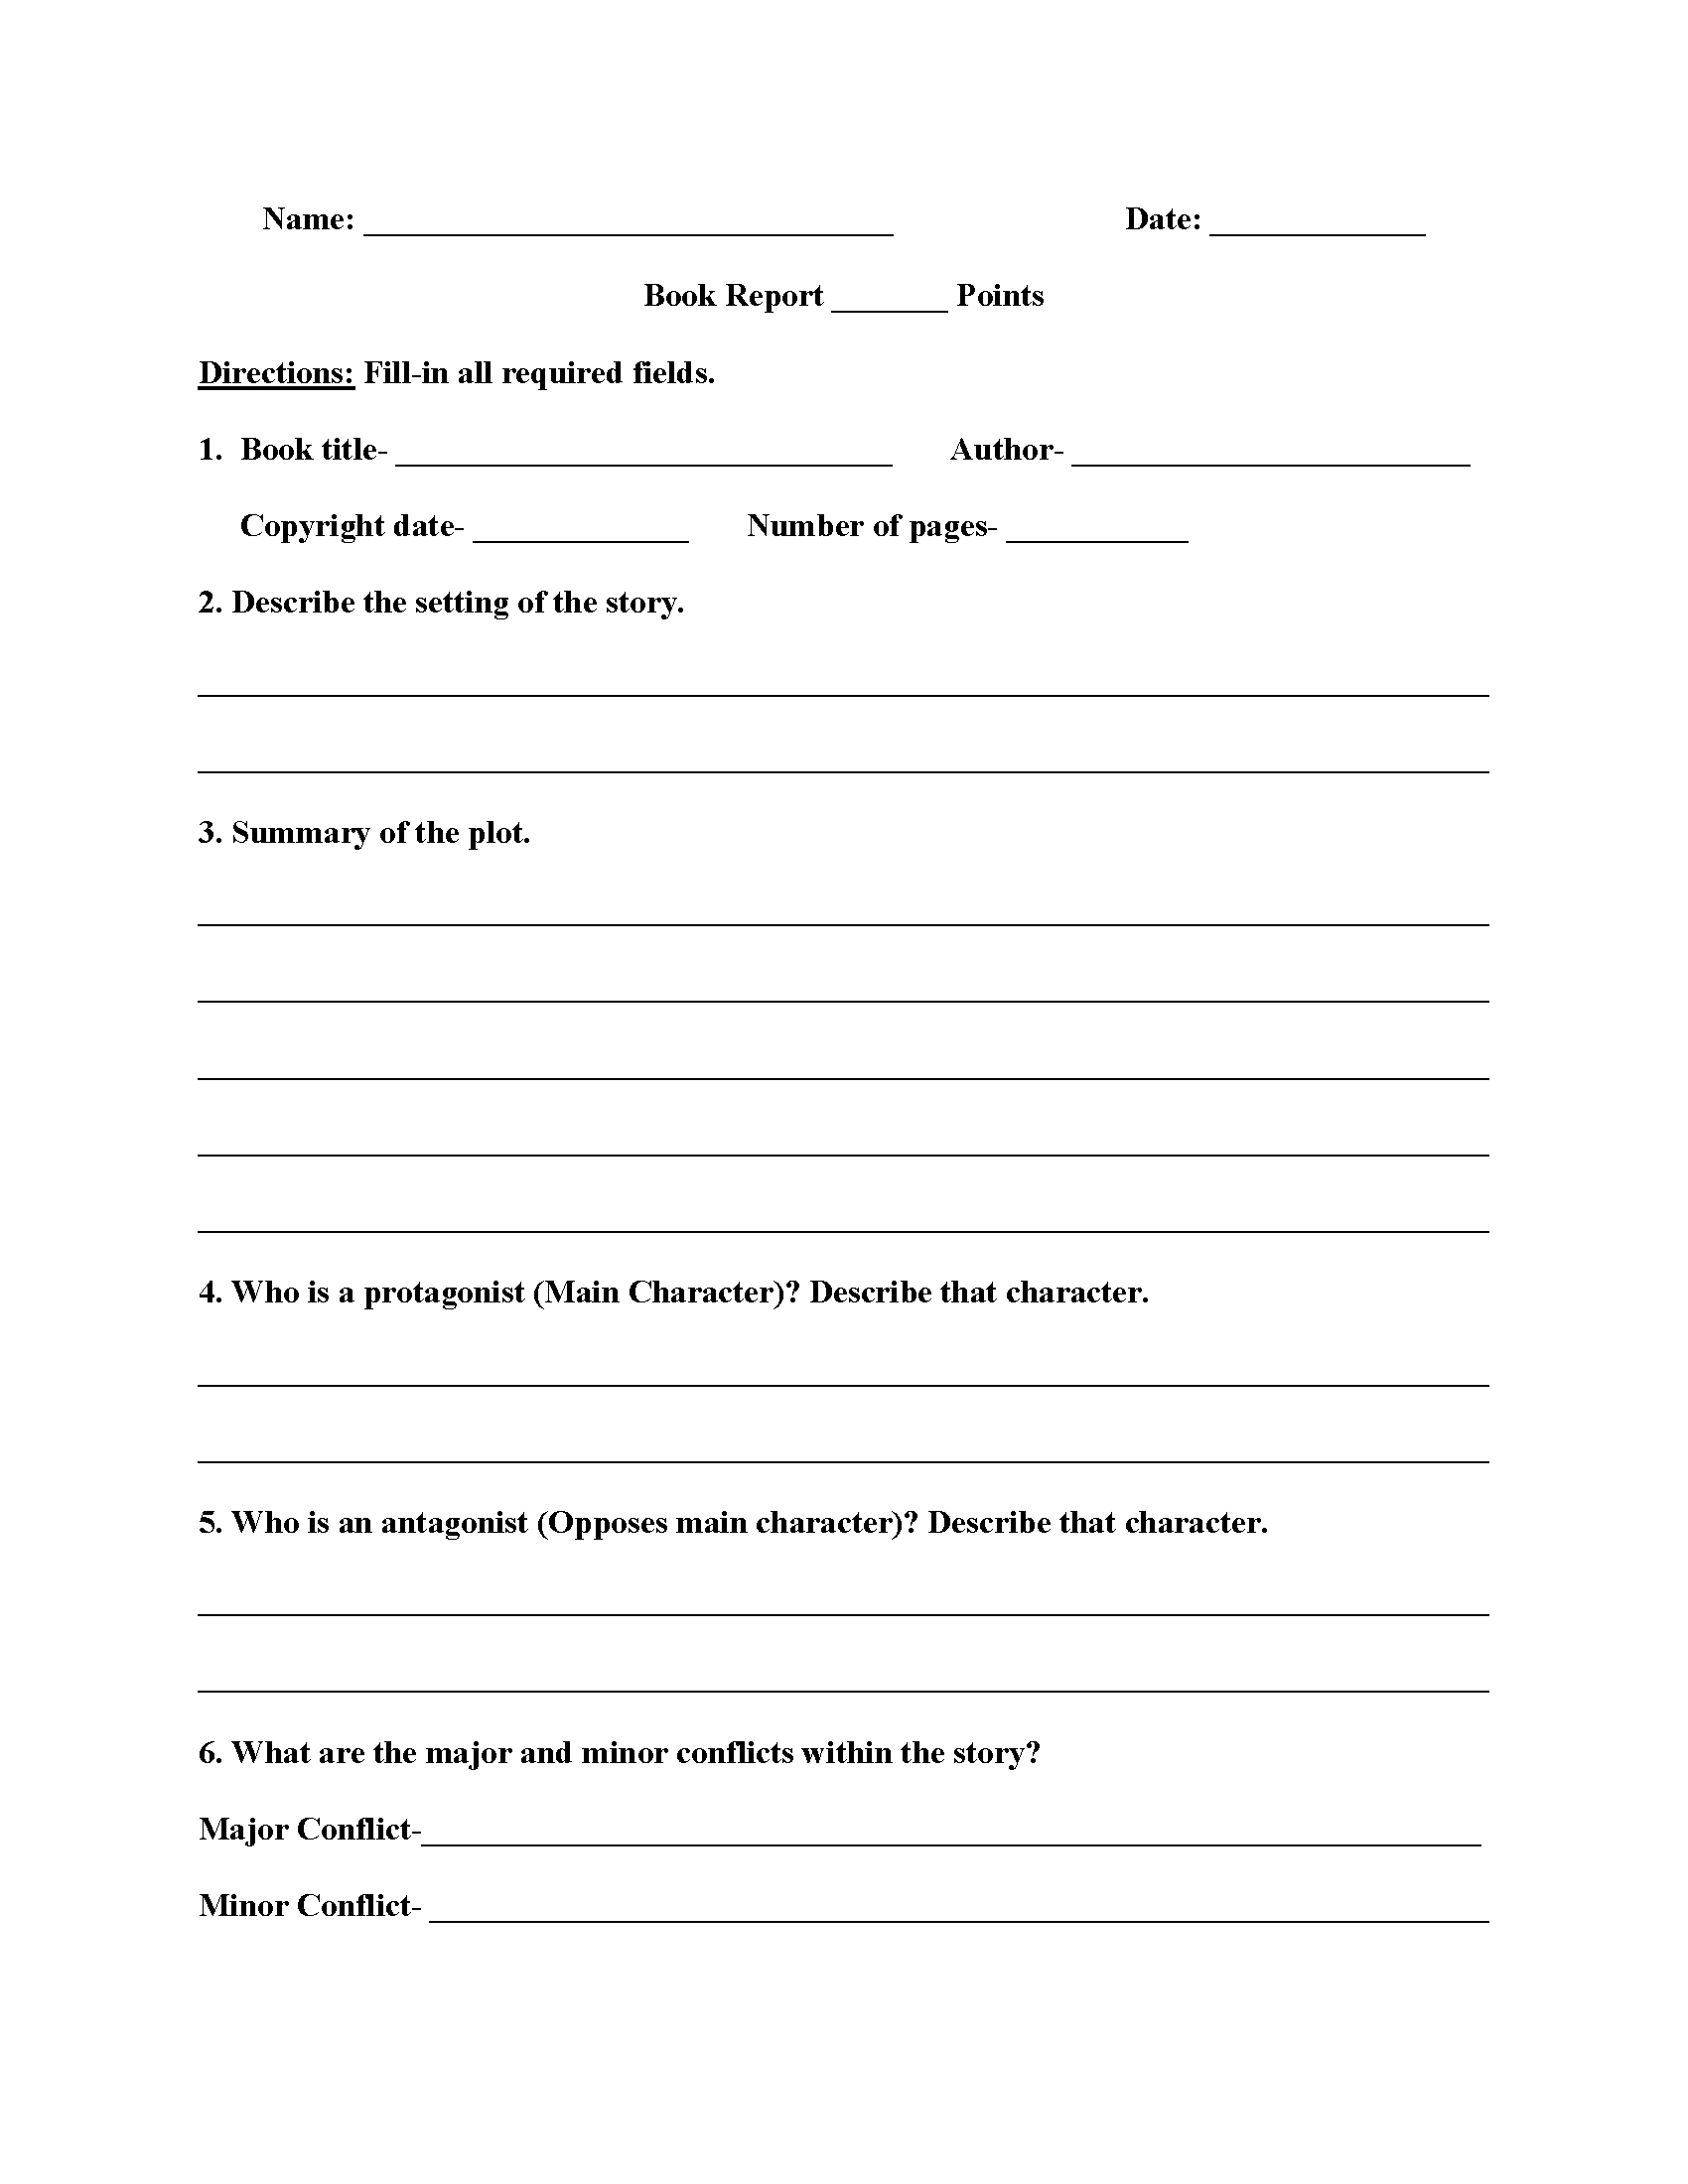 High School Book Report Worksheets | Education | High School Books | Printable Grammar Worksheets For Middle School